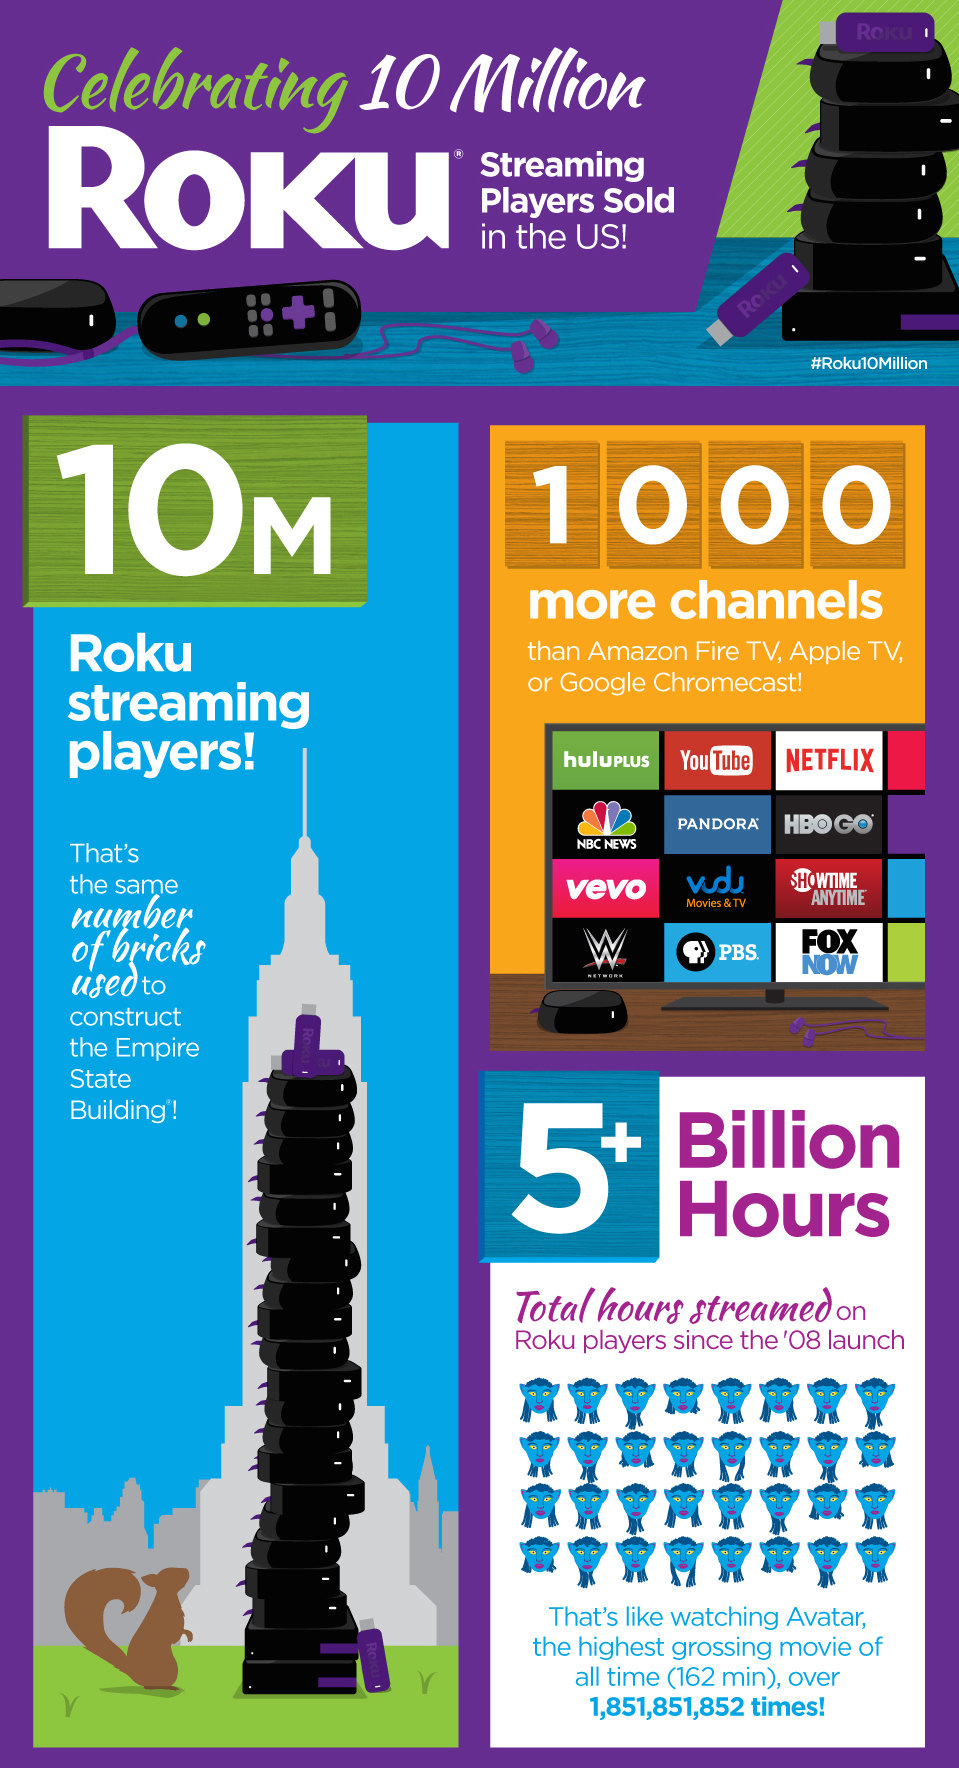 Roku Sets New TV Streaming Milestones